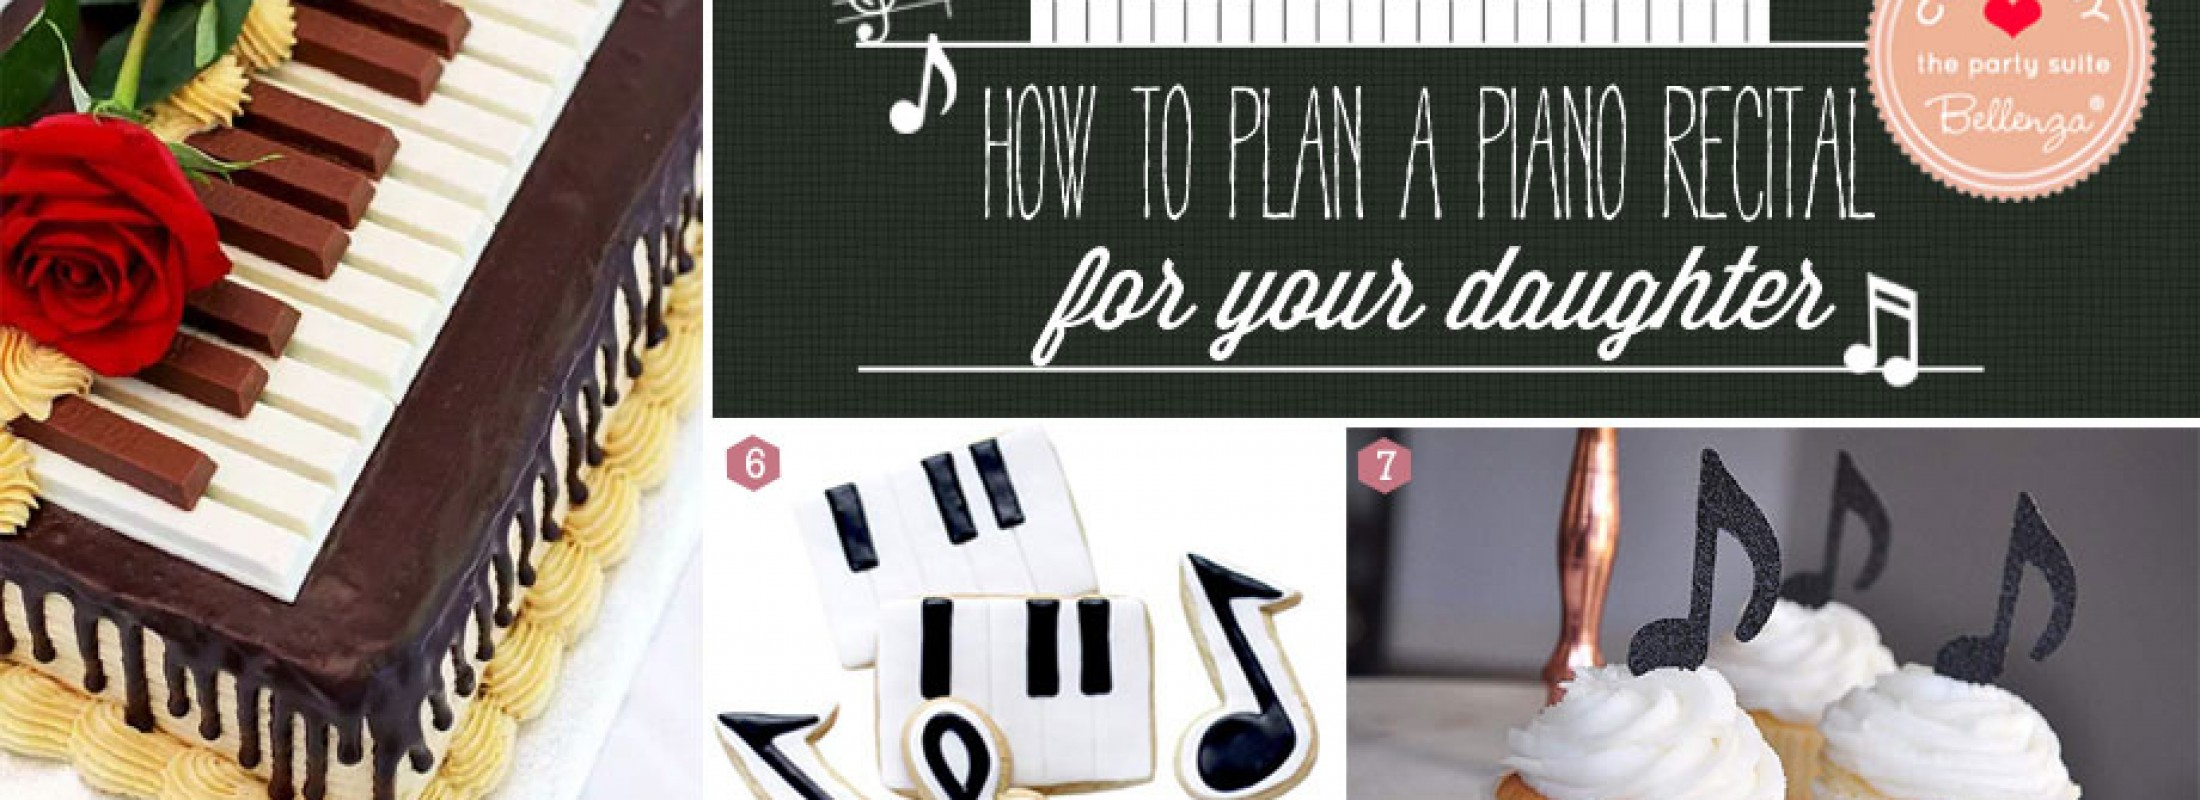 Piano Recital Party Ideas for Daughter